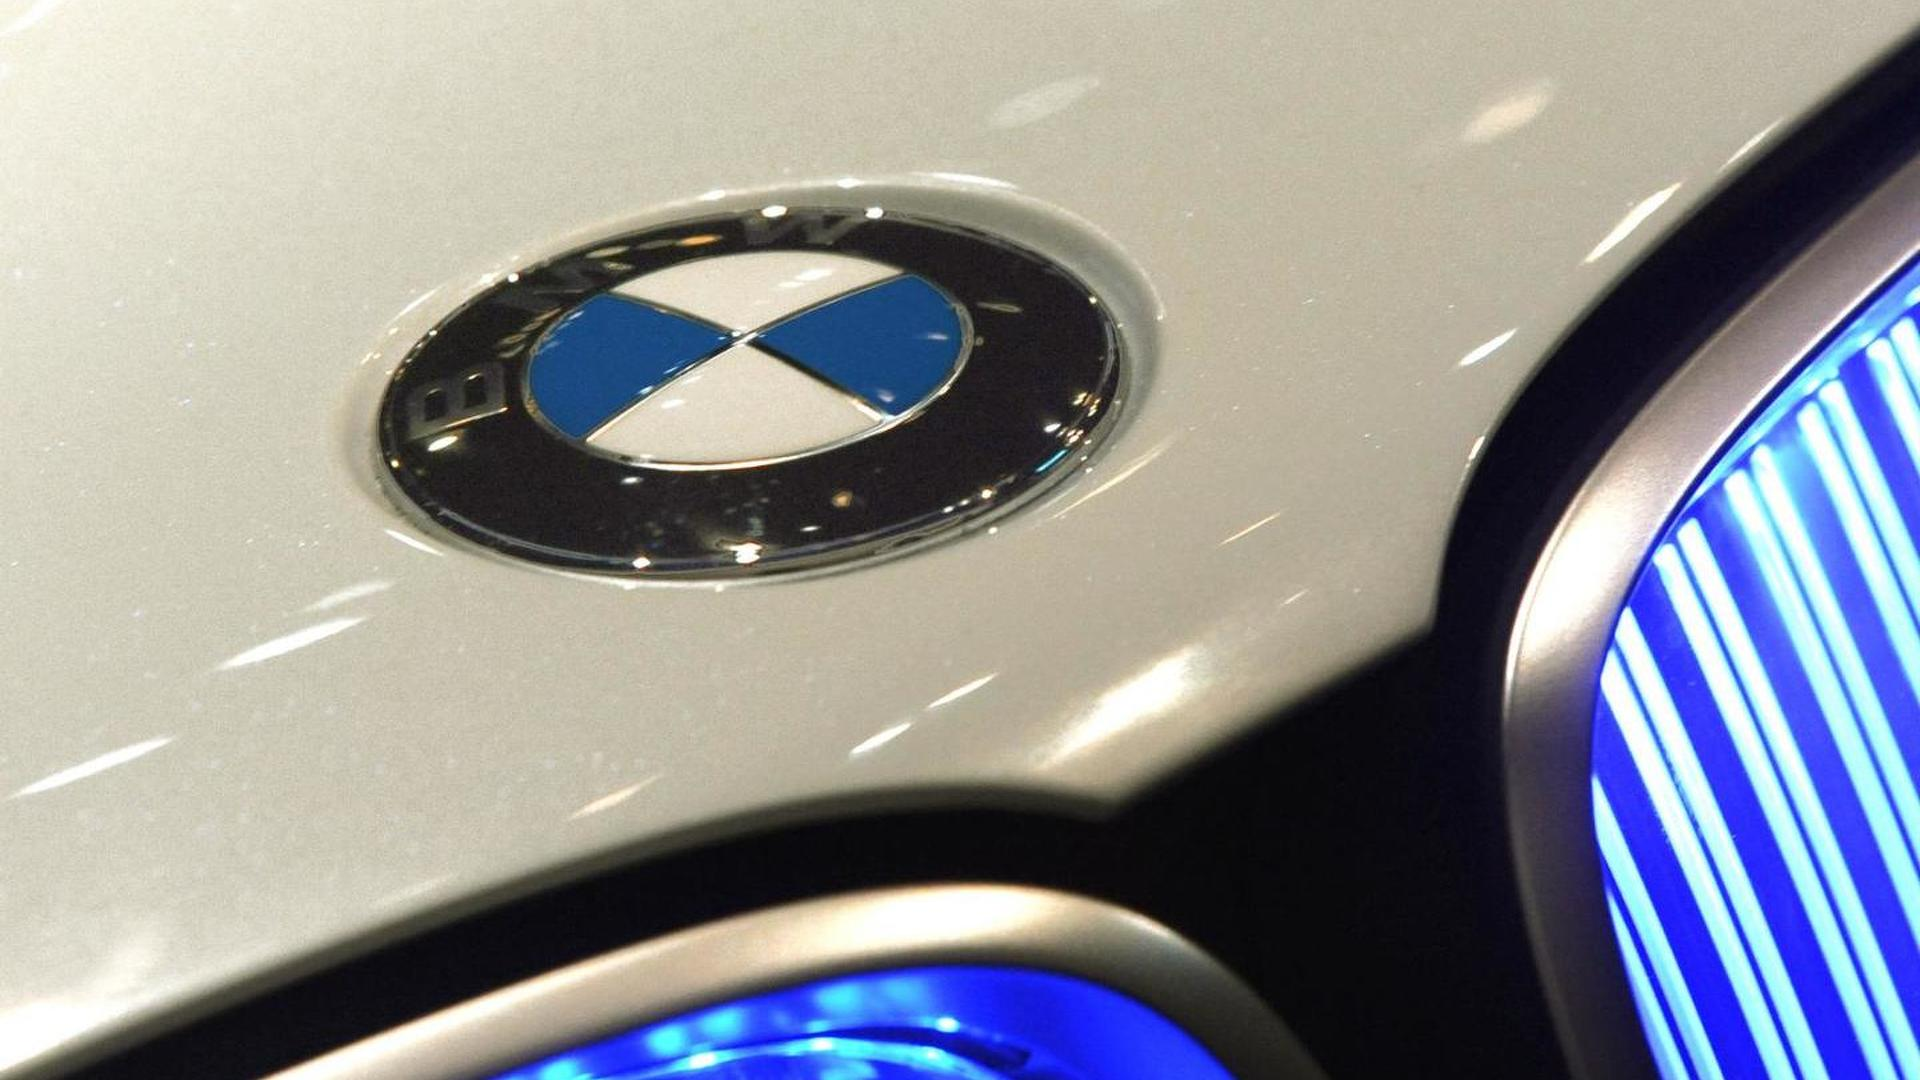 BMW recalls 110k cars with Takata airbags in Japan